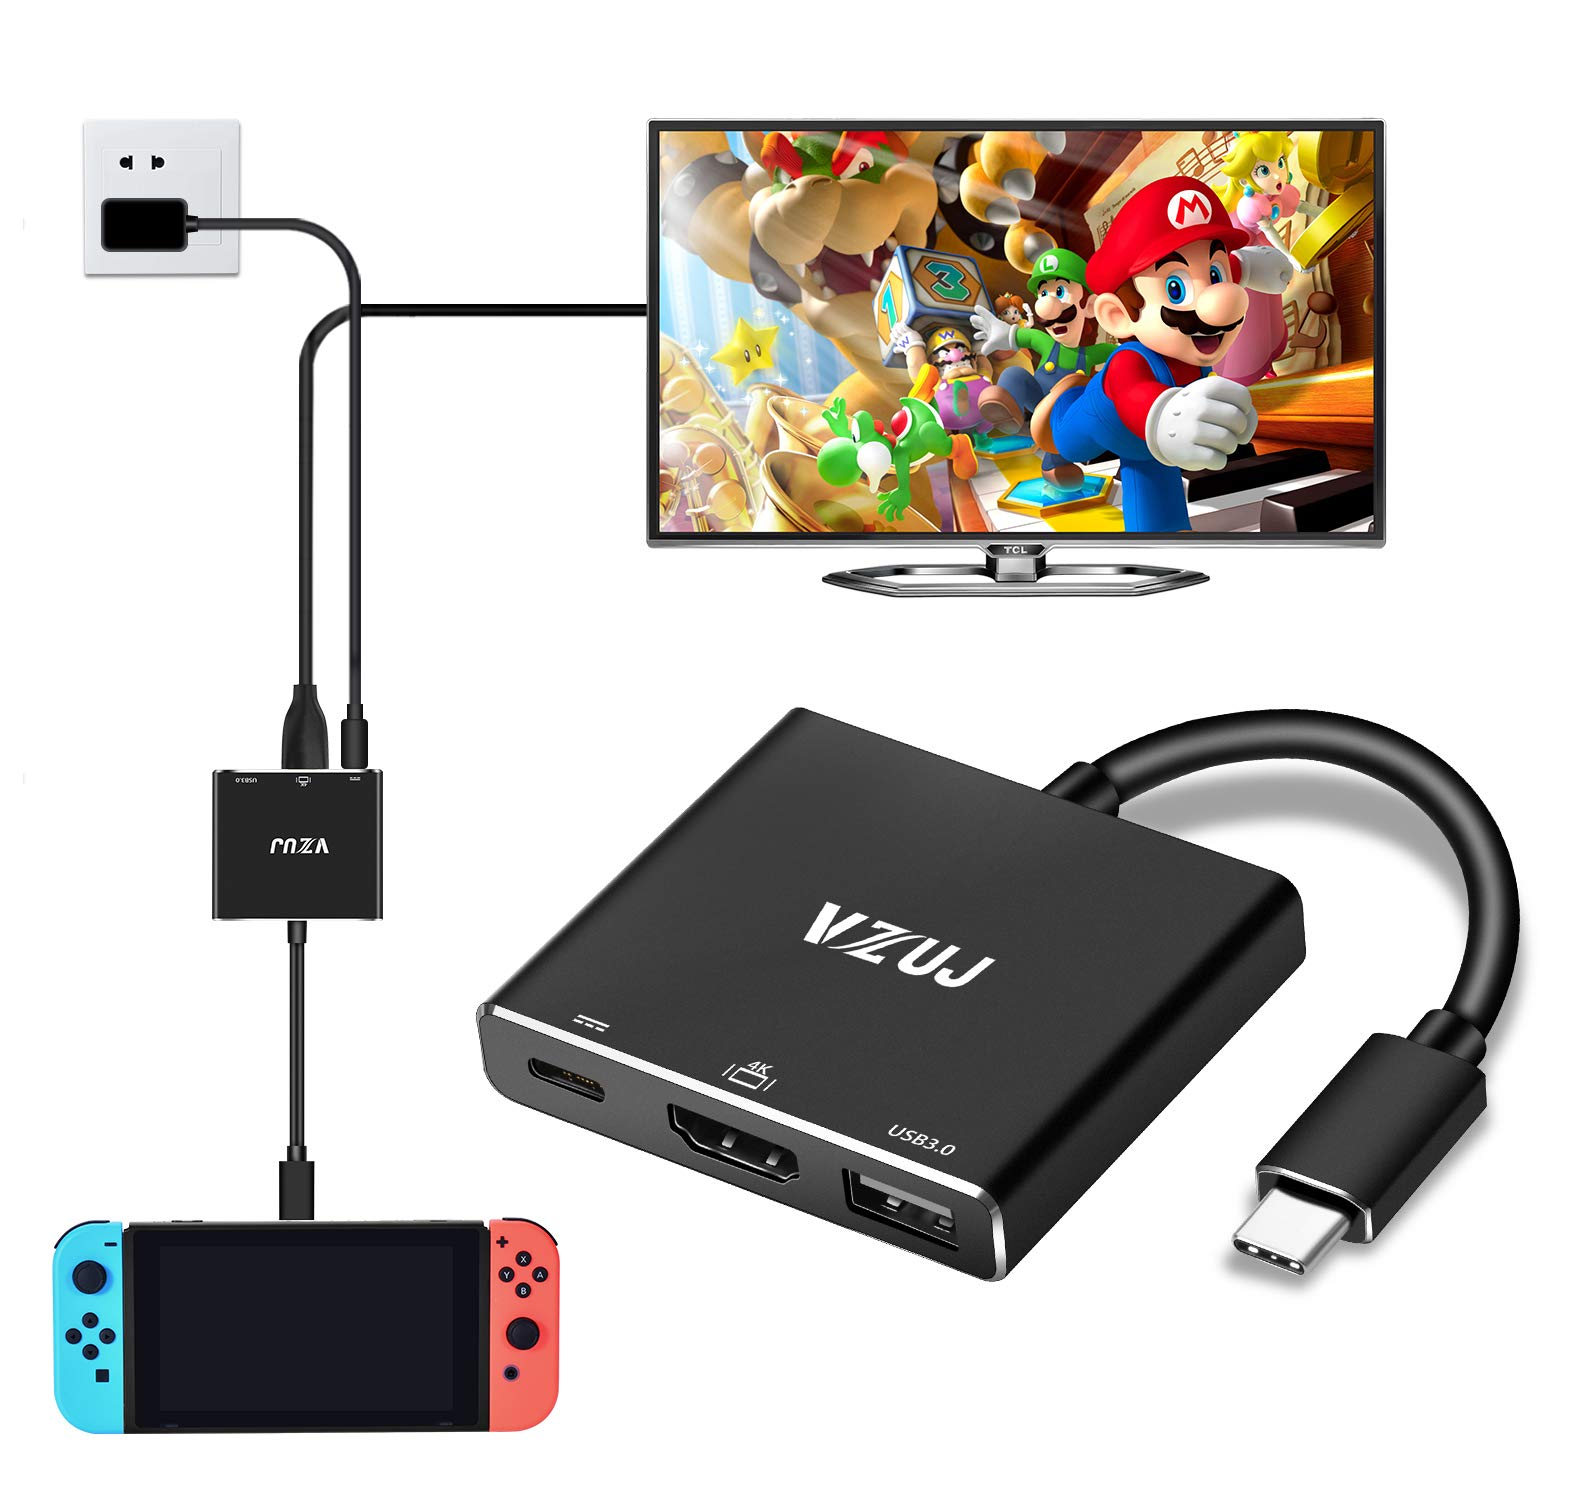 HDMI Type C Hub Adapter for Nintendo Switch,VZUJ USB C Multiport To HDMI Adapter with 4K UHD HDMI,USB A 3.0 and Fast Charging Port Compatible with MacBook Pro,Samsung Galaxy S9,S8/S8 Plus More,Black